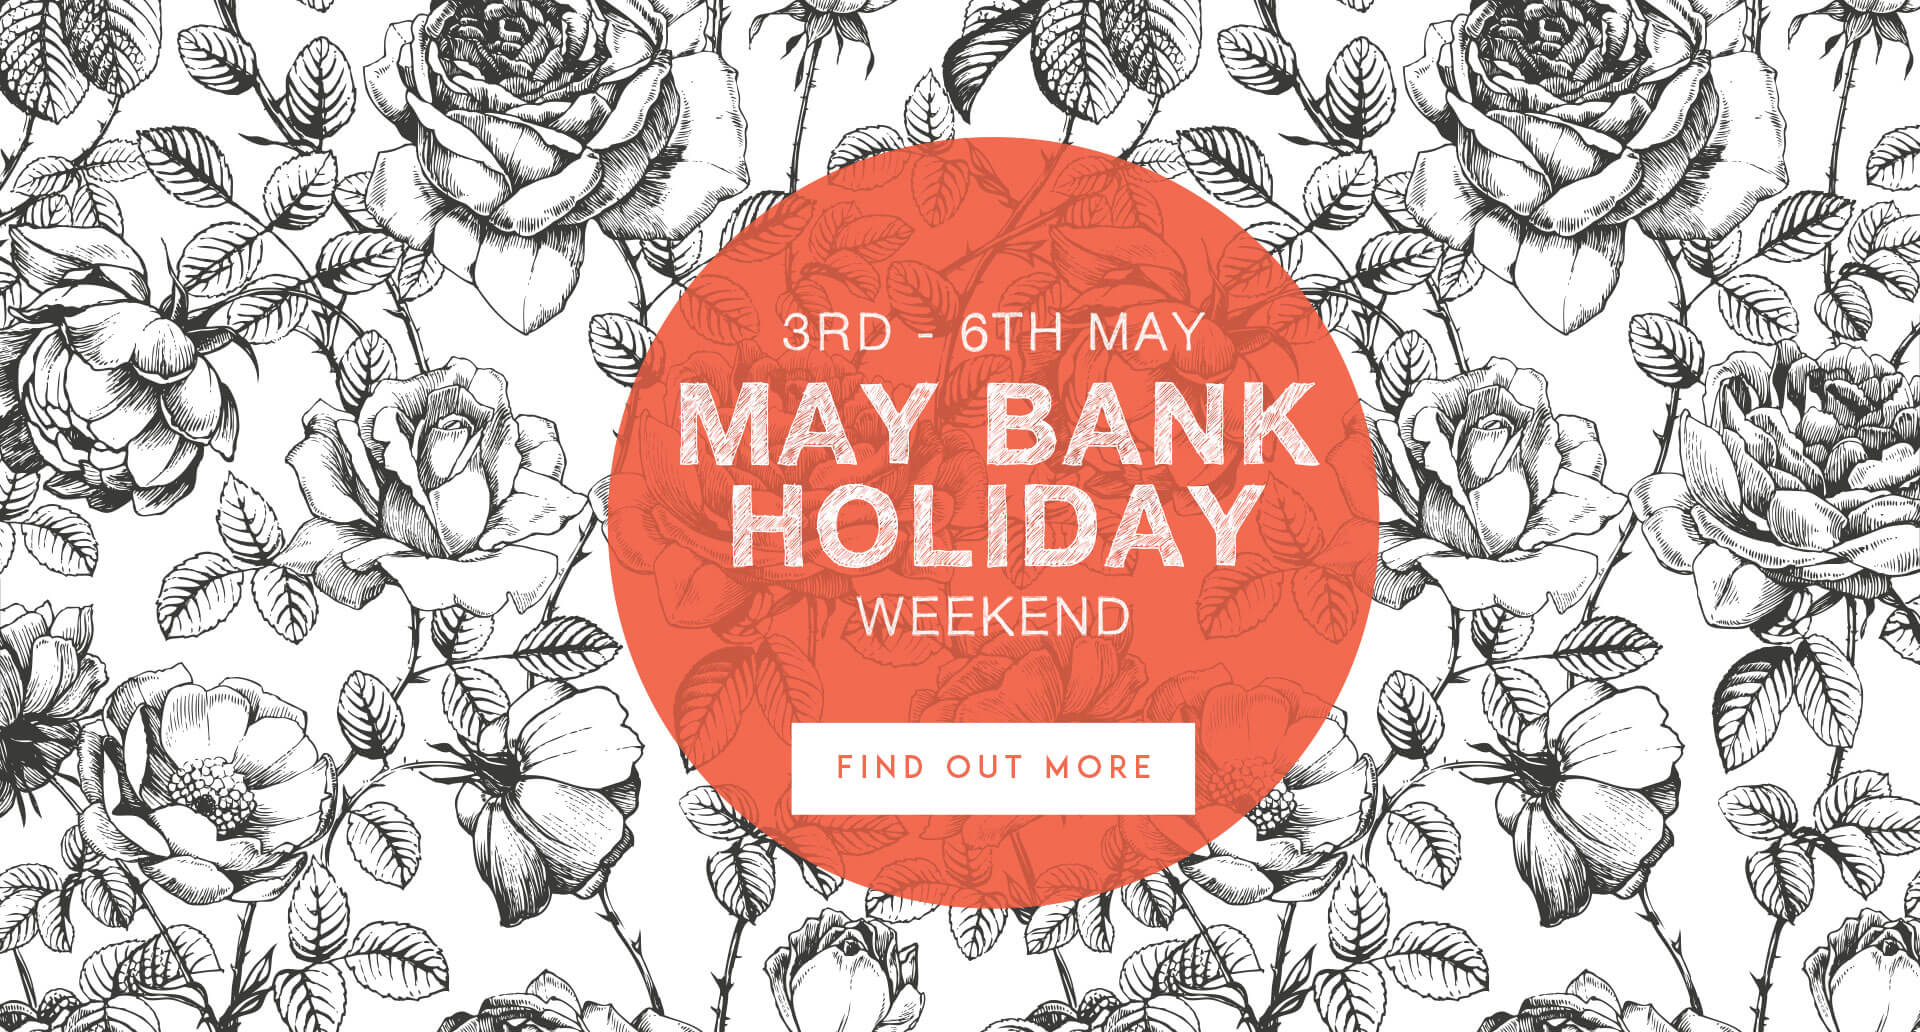 May Bank Holiday at The Rose and Thistle